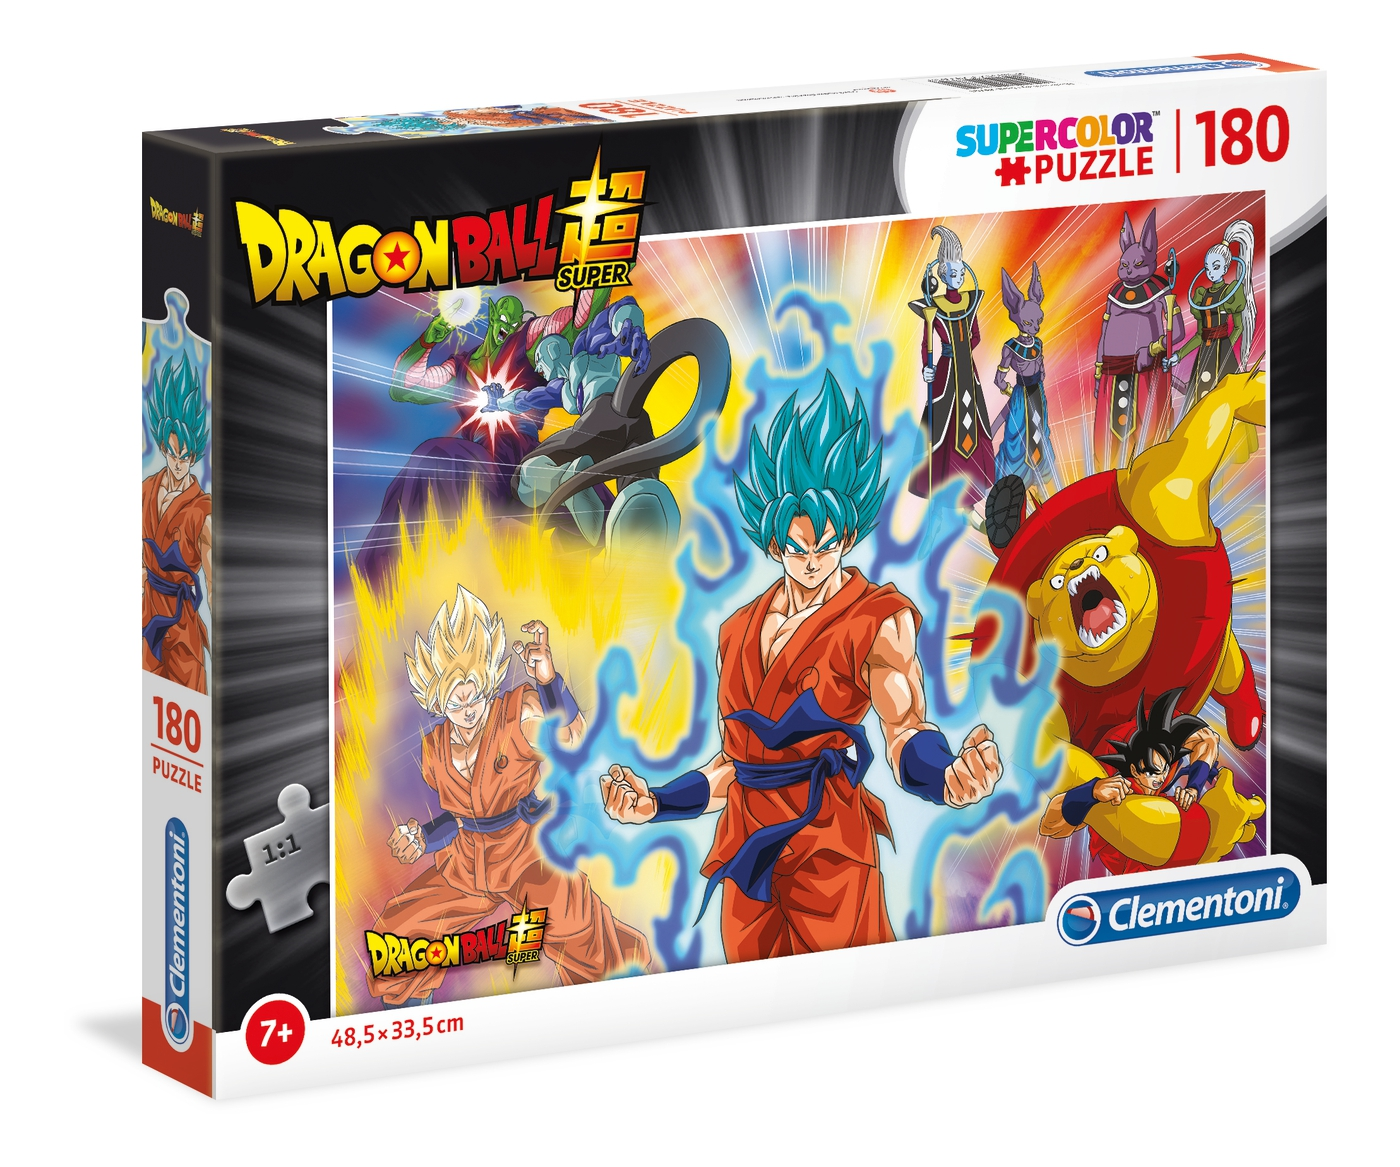 Dragon Ball Super - Supercolor Puzzle 180 pièces